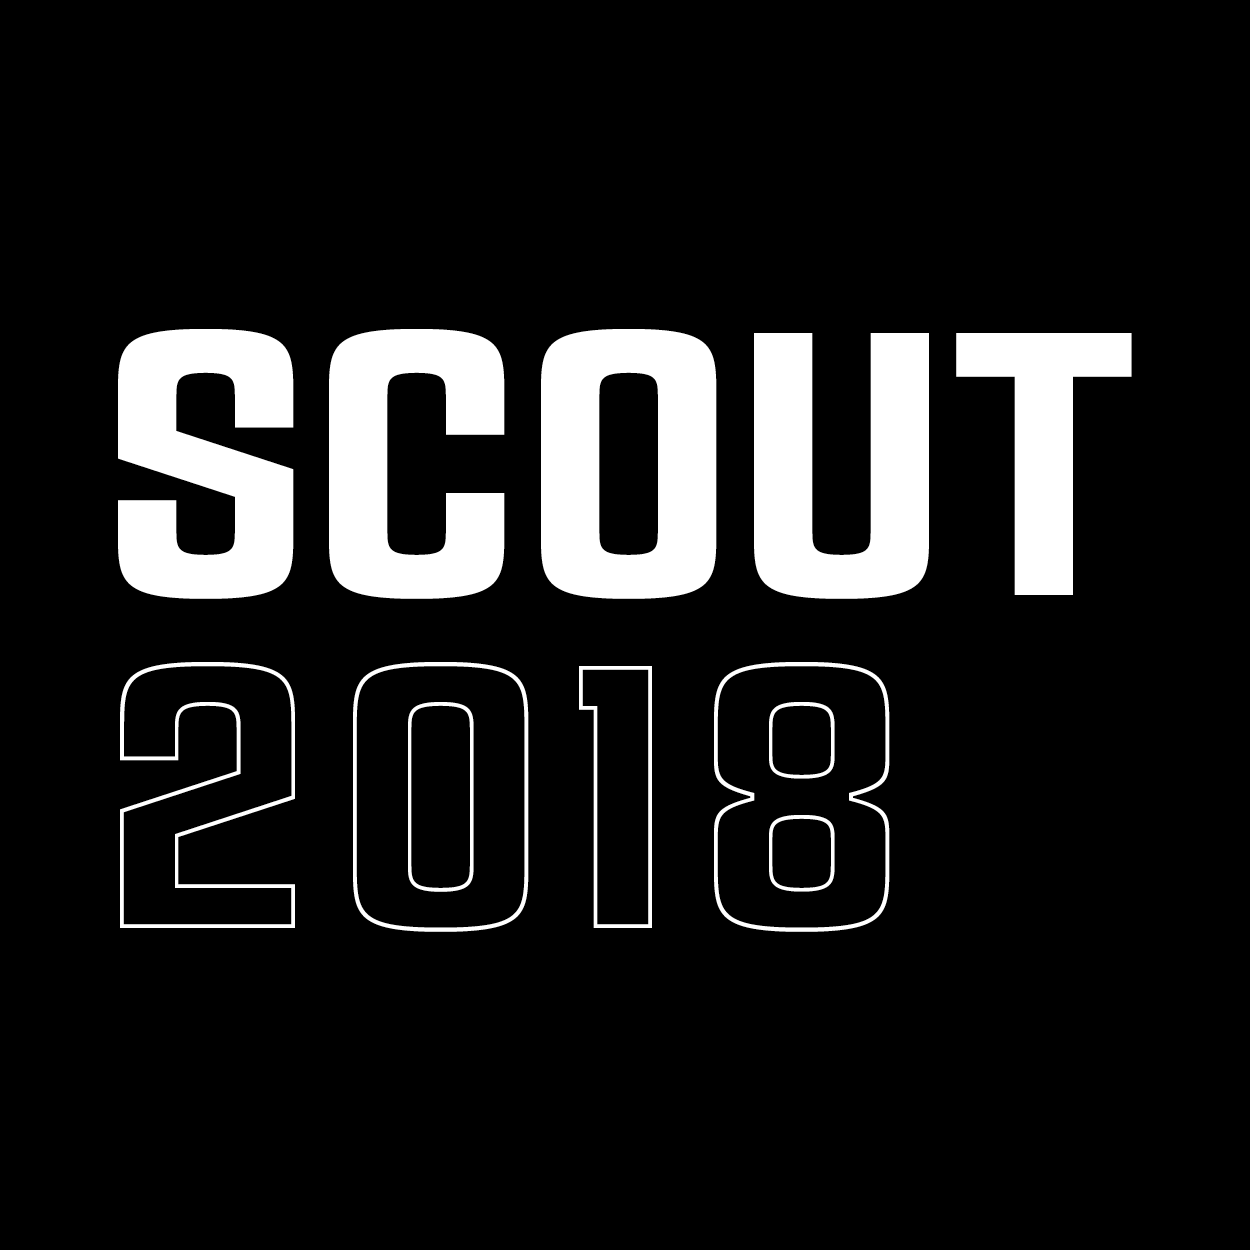 SCOUT is back, connecting students with startups